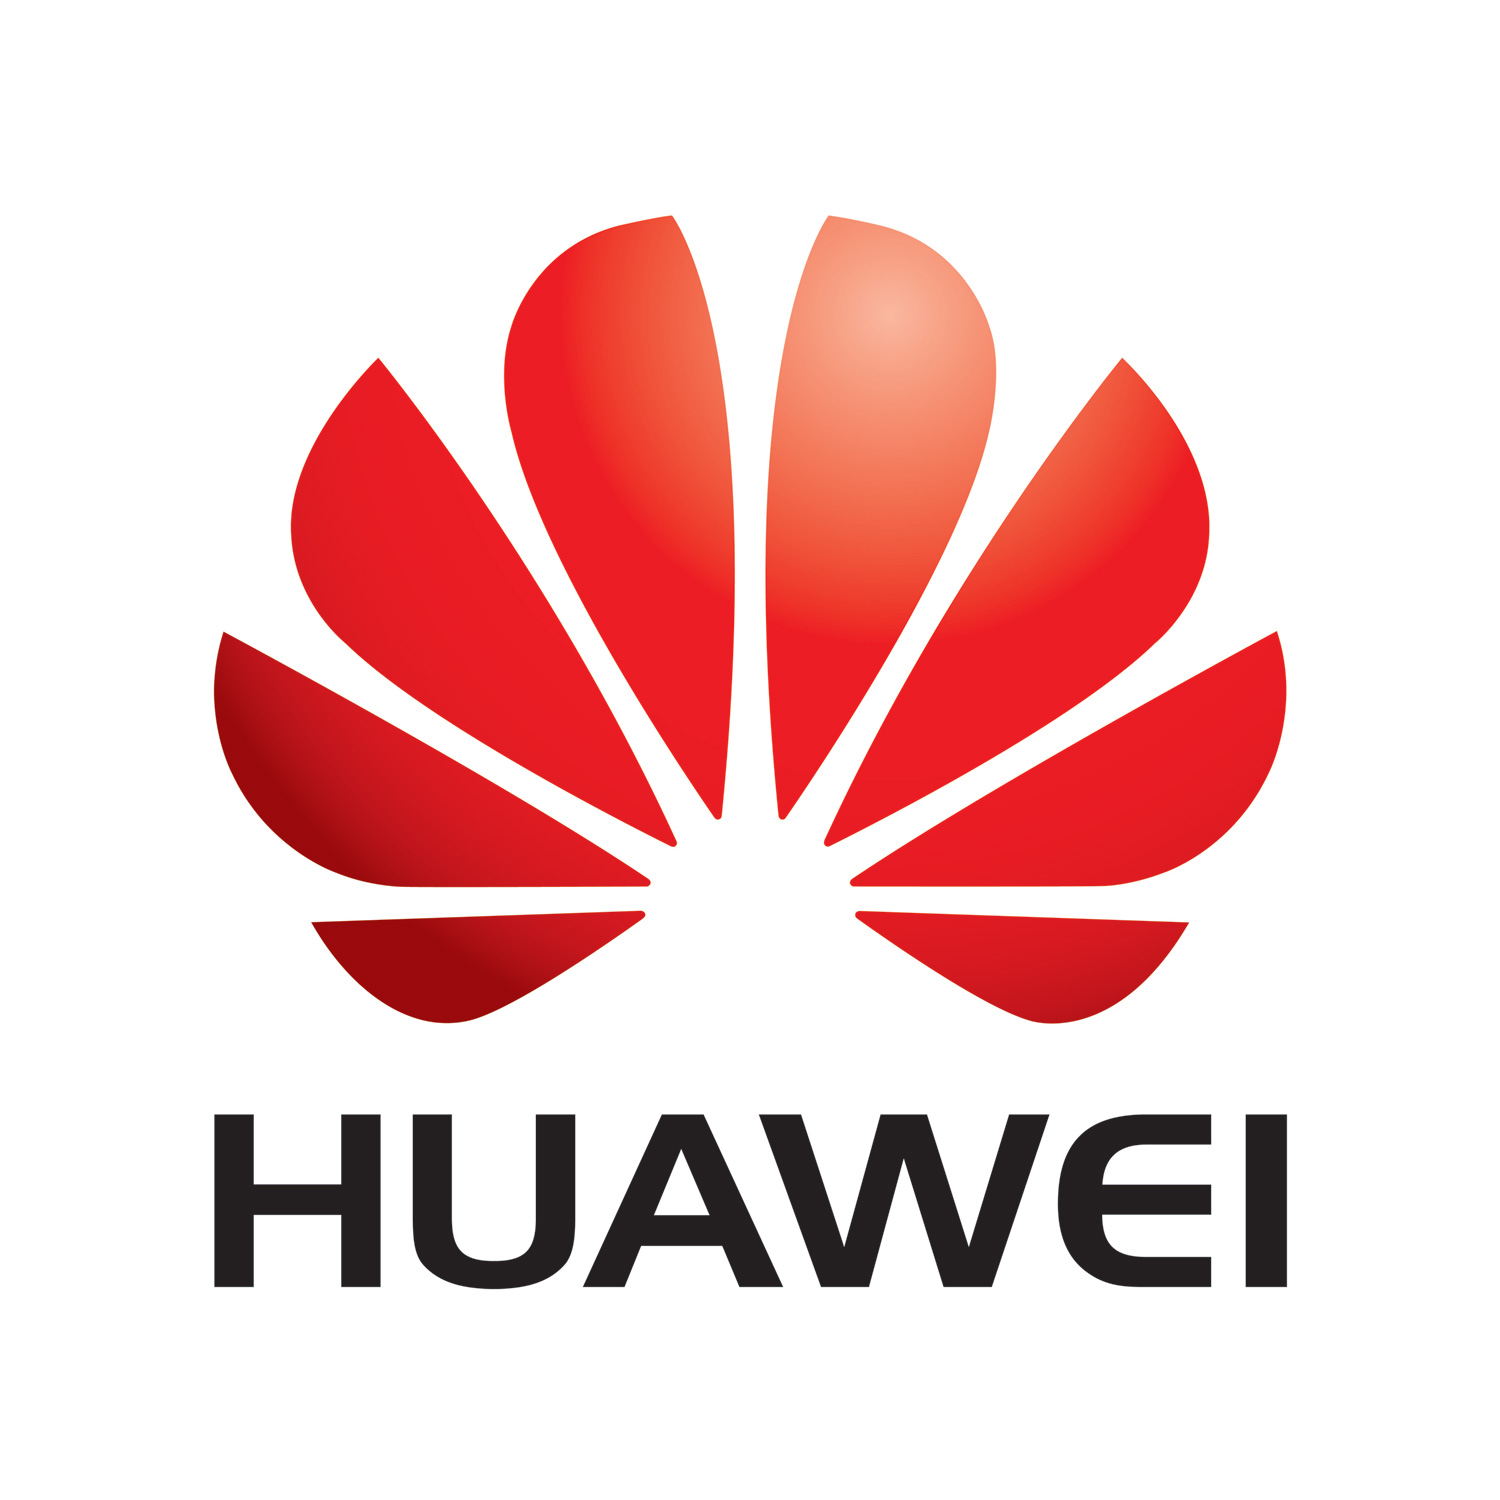 LG U+'s purchase of Huawei telecoms equipment is creating a security controversy.